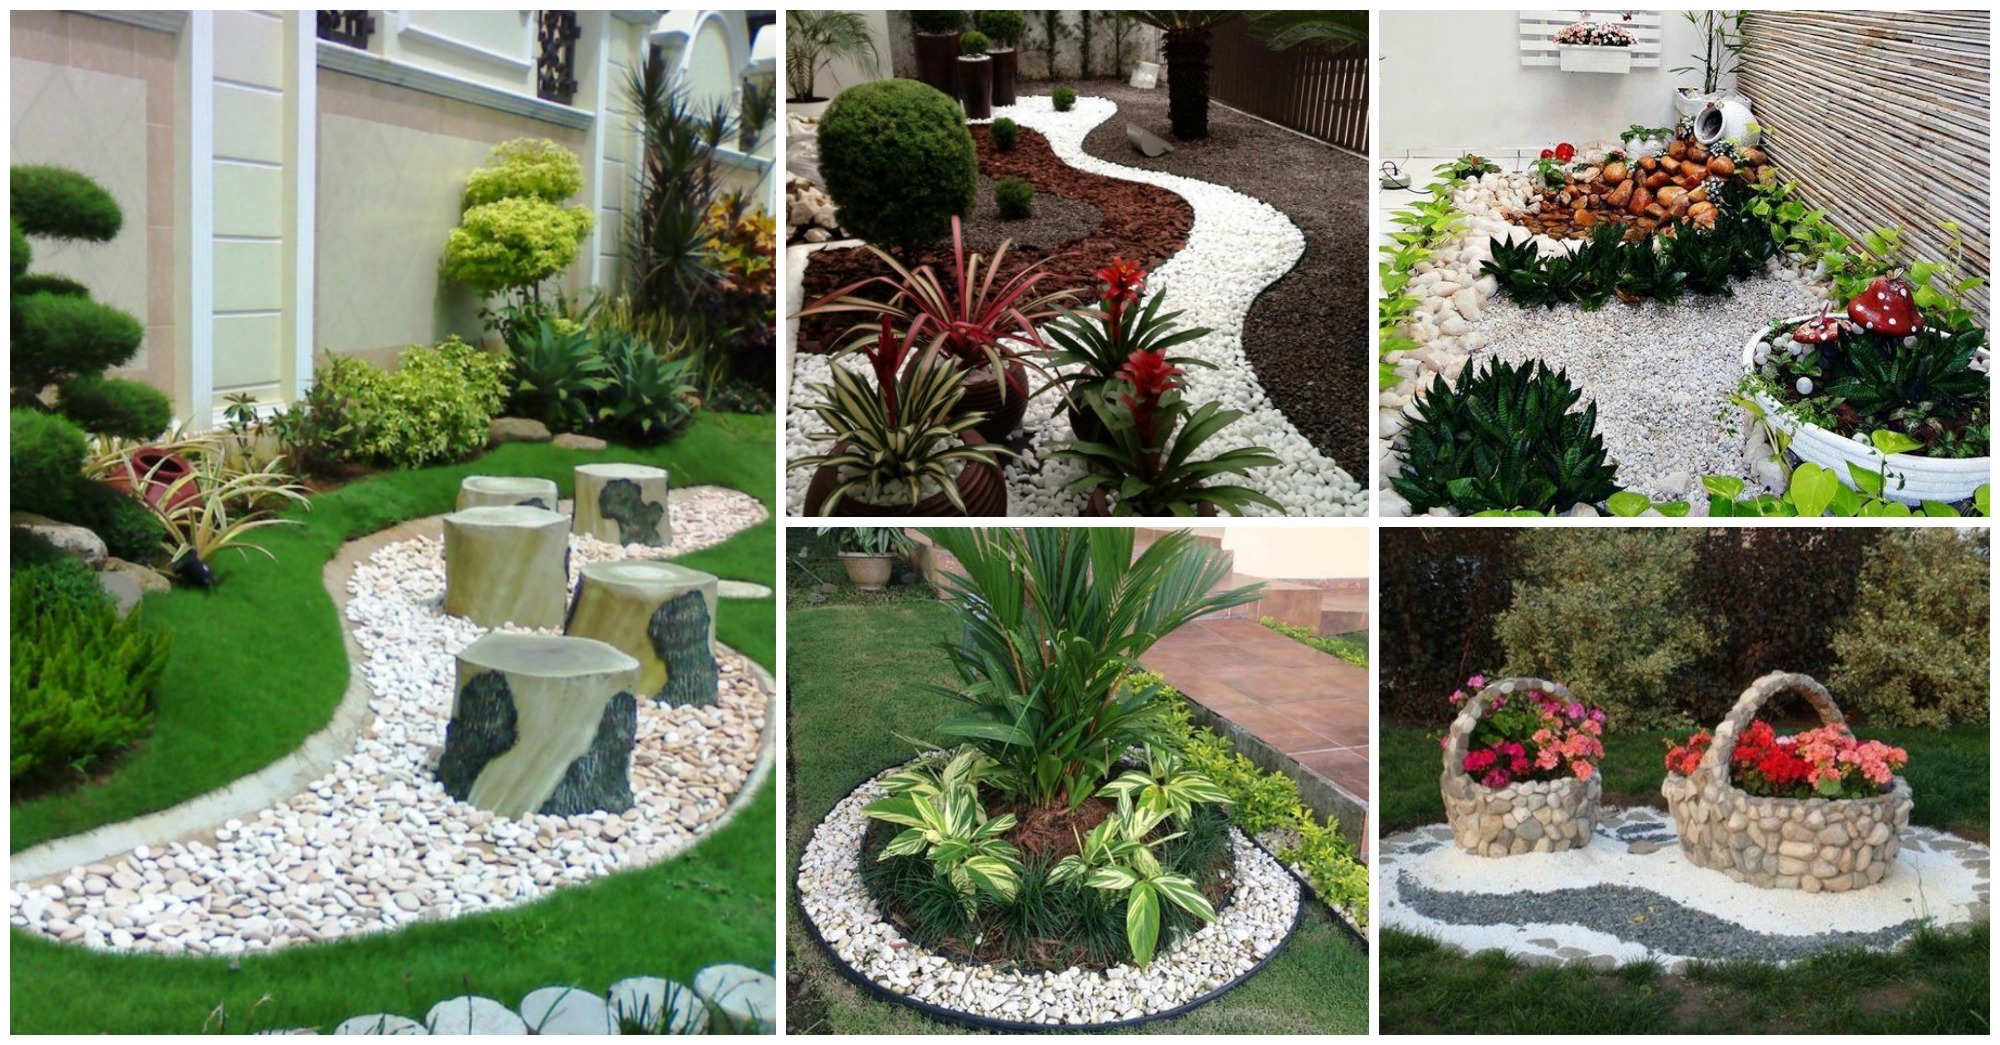 12 fant sticas ideas para dise ar un jard n con piedras for Ideas para decorar jardines